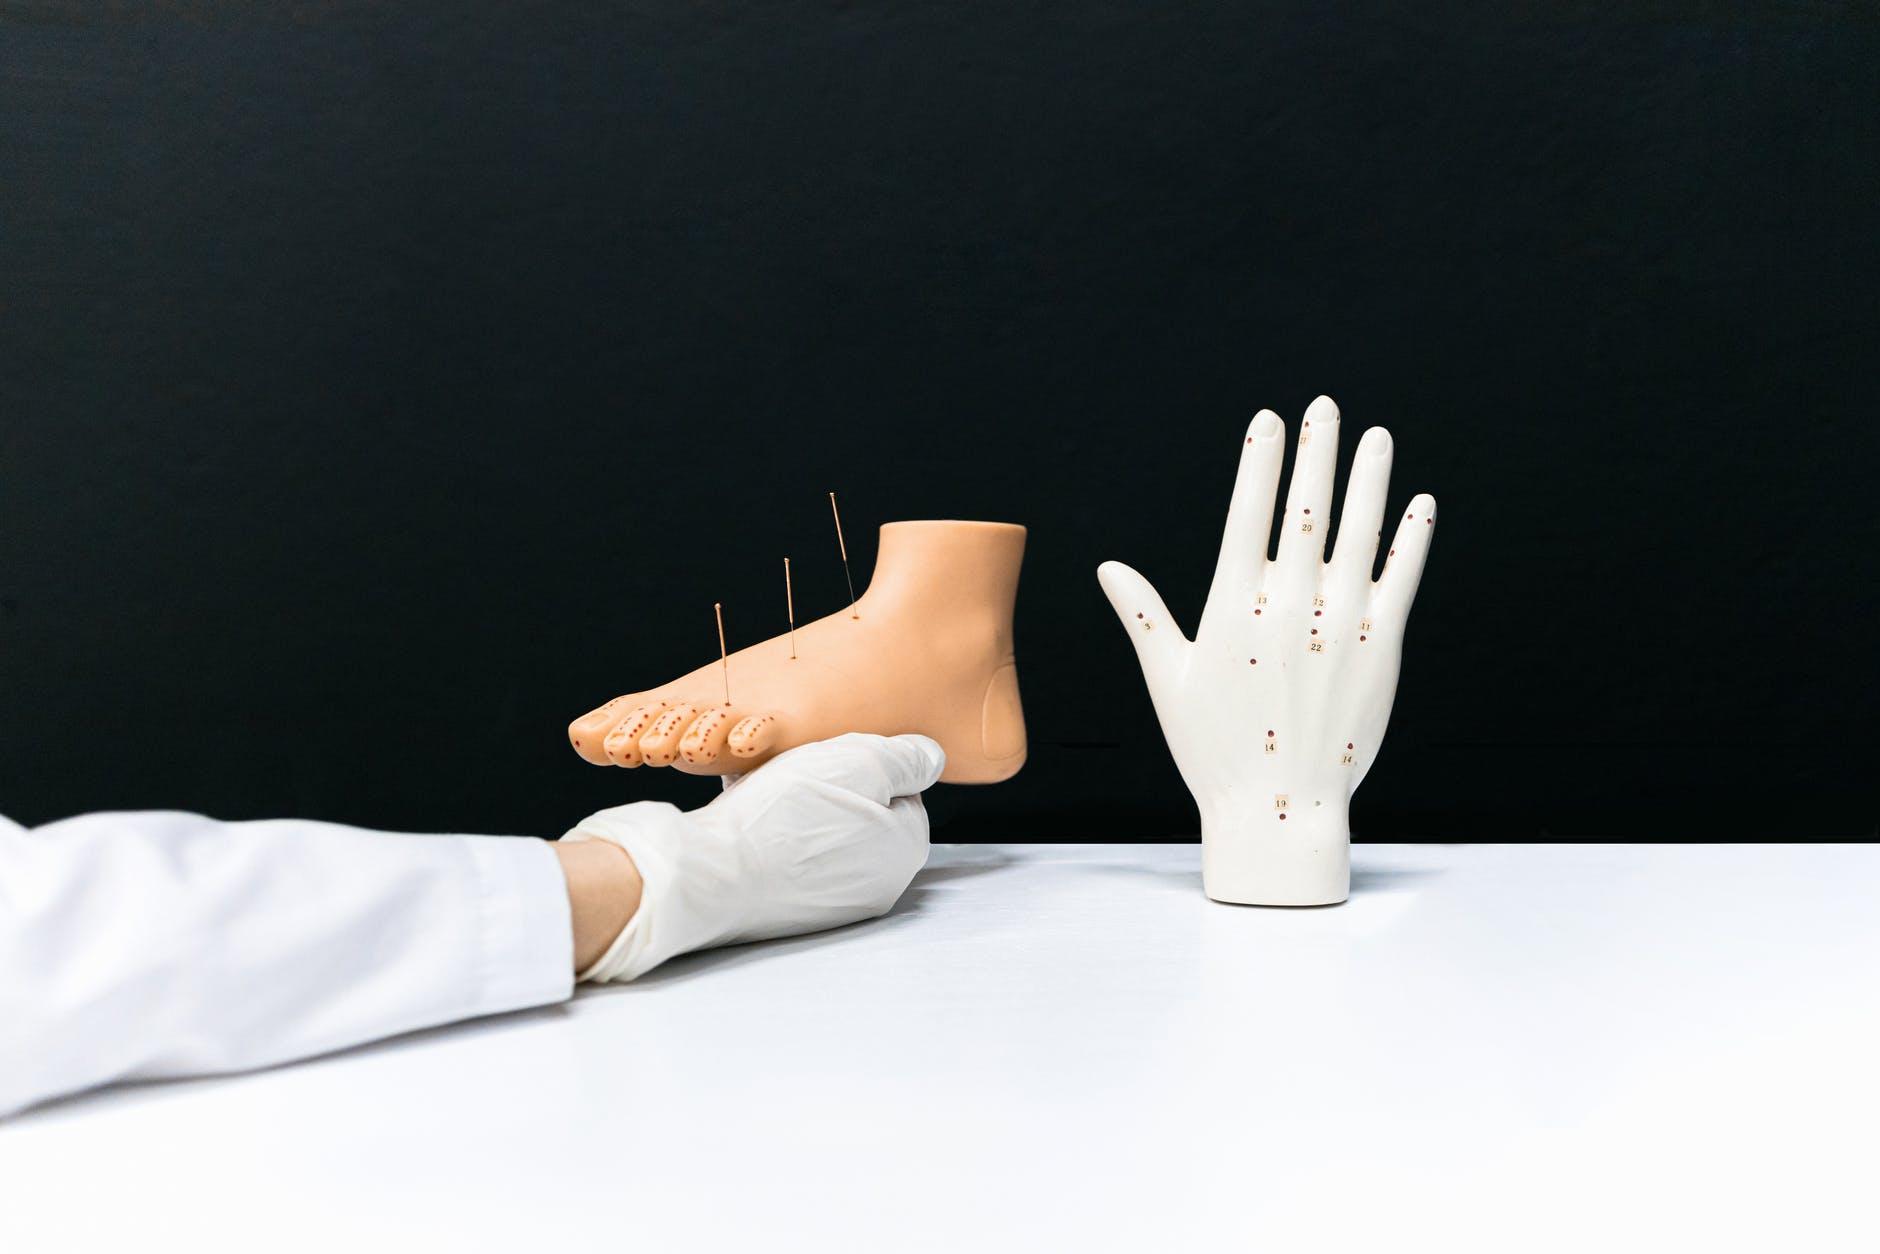 person wearing white gloves with brown gloves